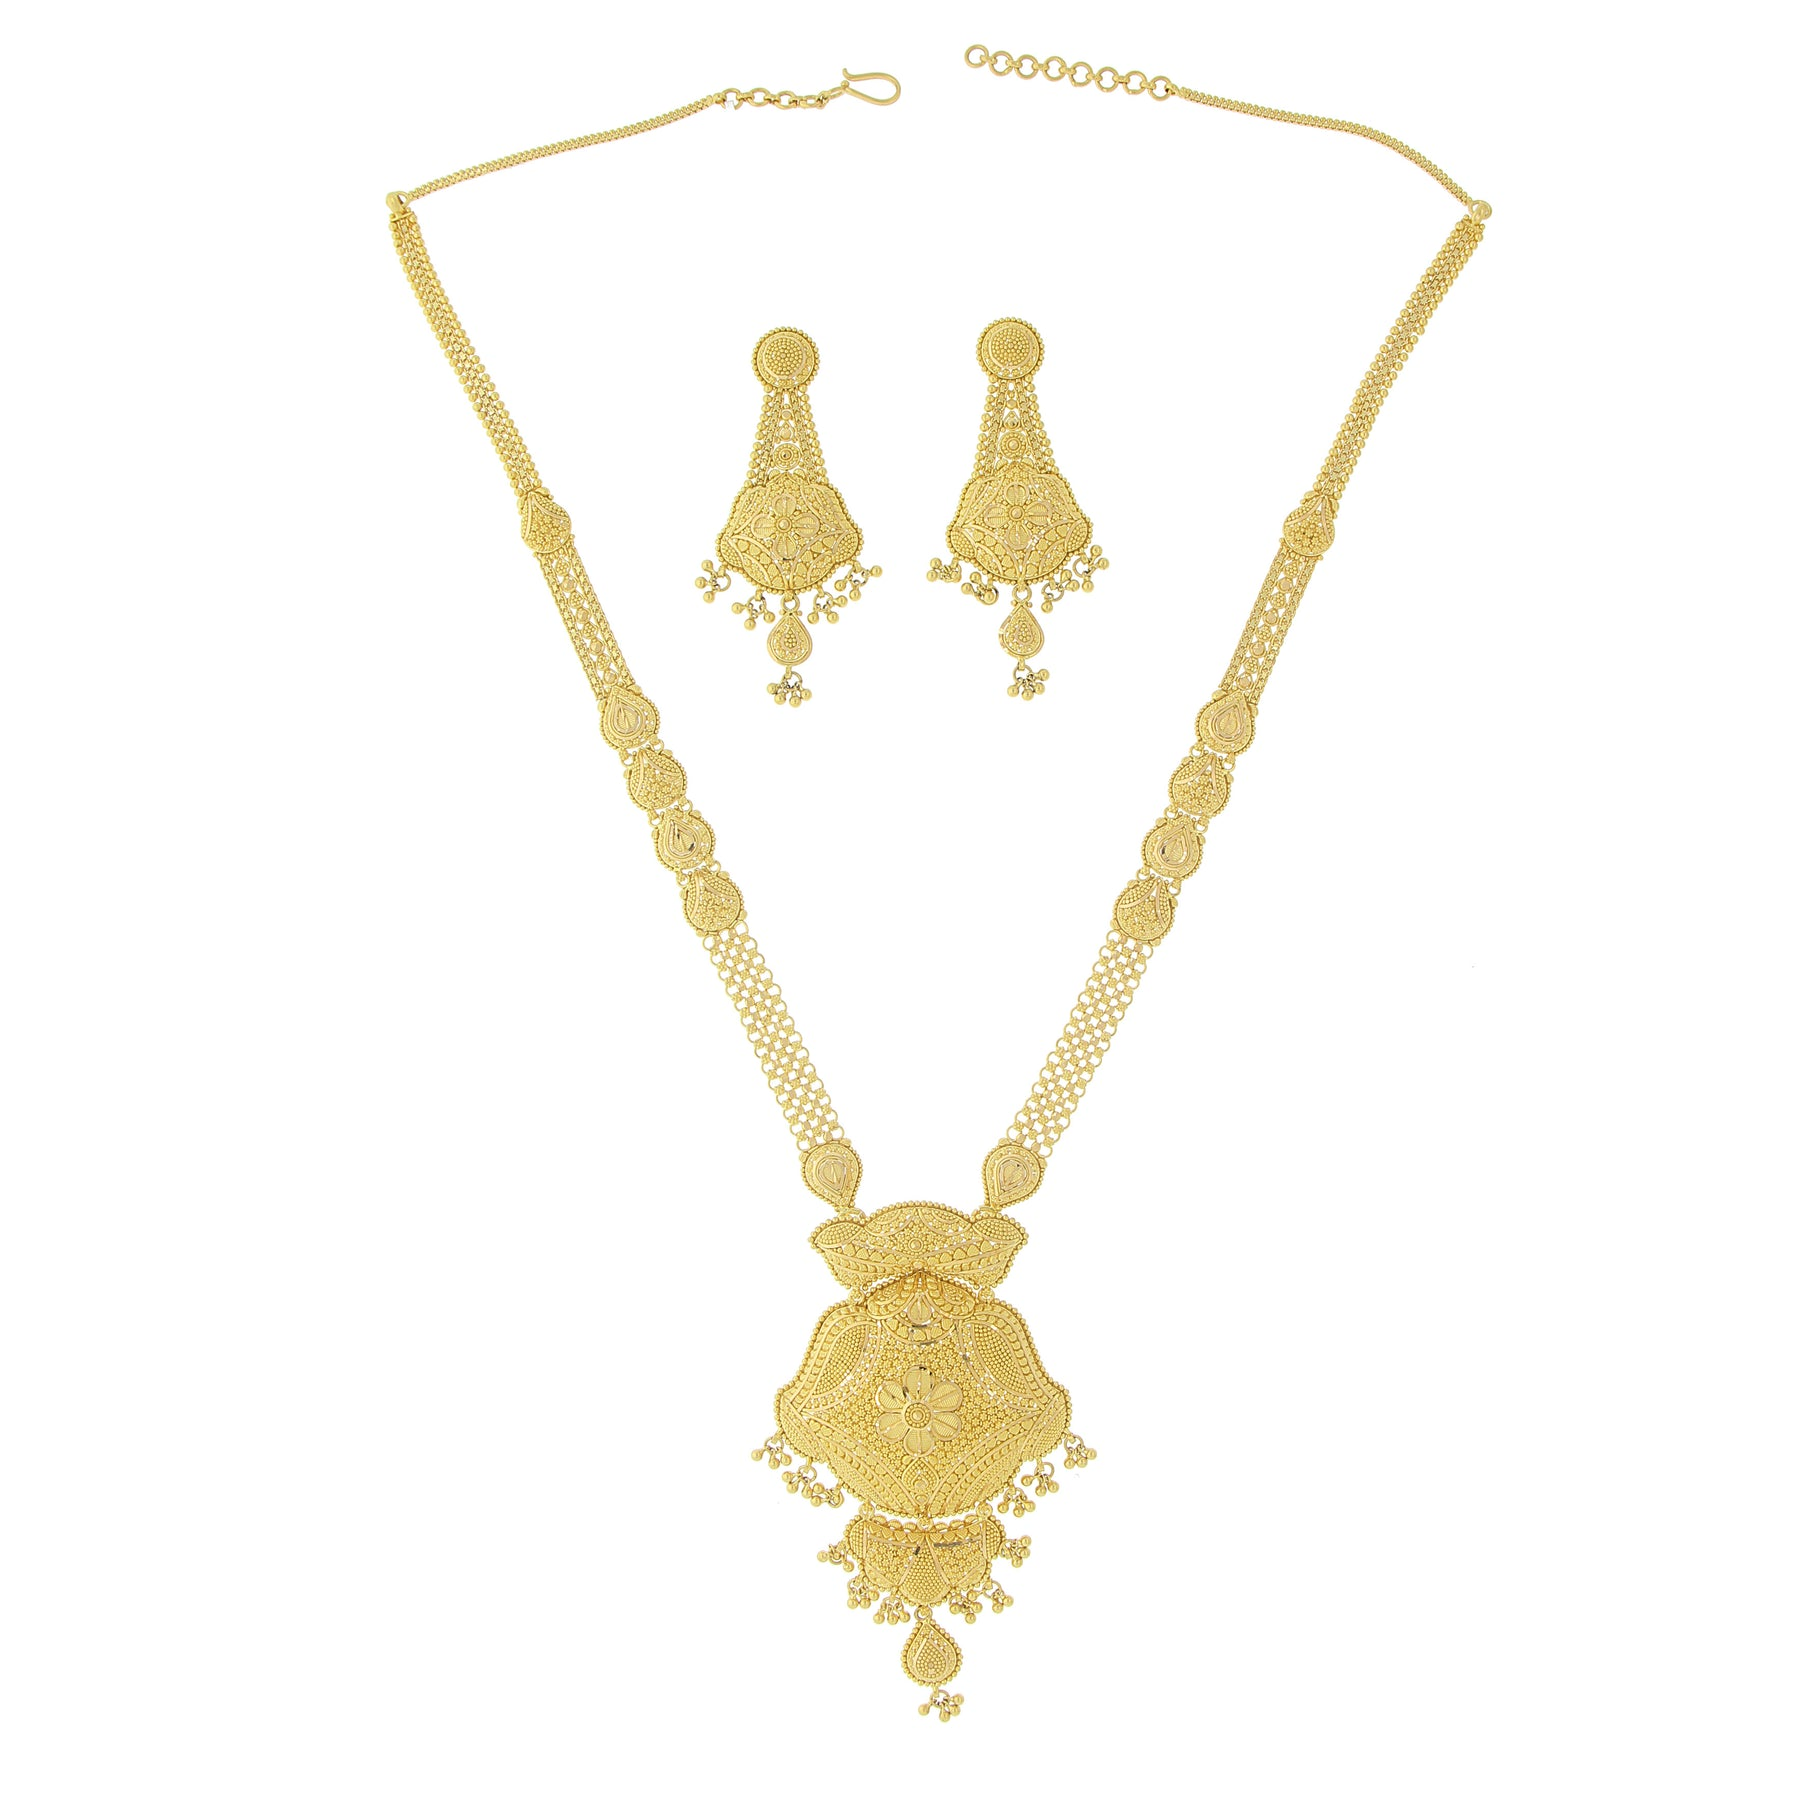 3 PIECE LONG GOLD NECKLACE SET – Andaaz Jewelers